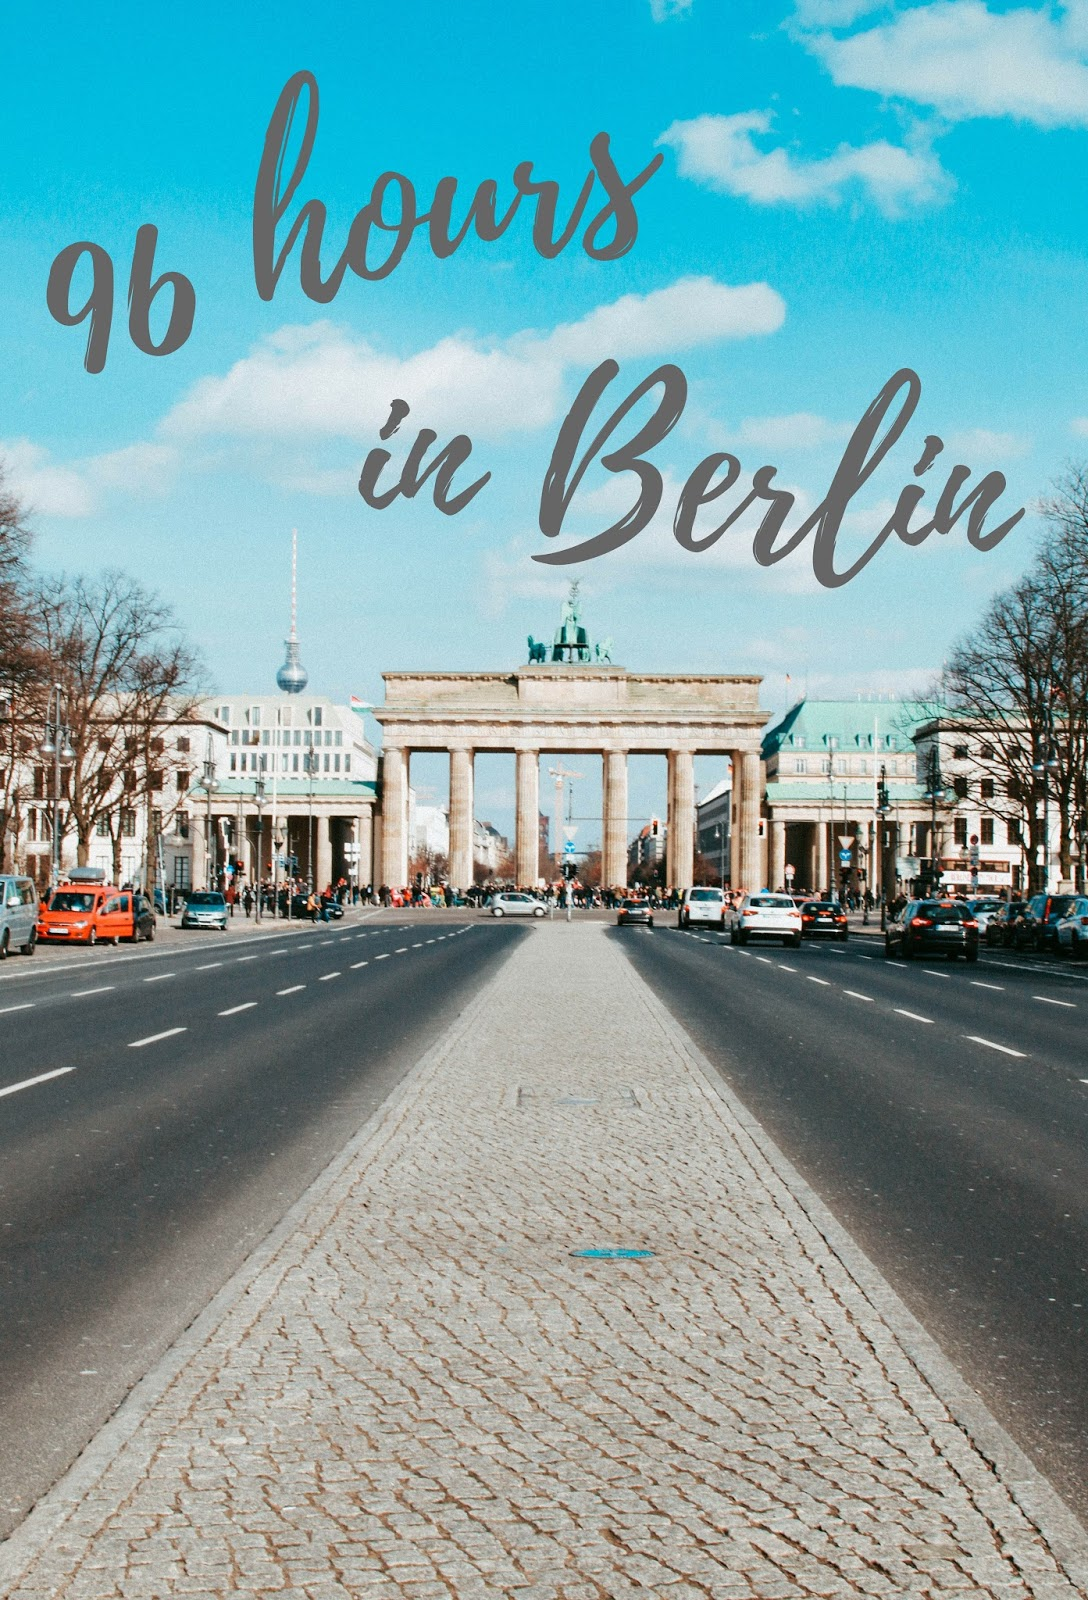 96 hours in berlin, berlin, berlin germany, berlin travel, travel blogger, travel diary, europe travel, europian trip, getaway, weekend trip, weekend break, lifestyle, lifestyle blogger, fashion blogger, beauty blogger, forever september